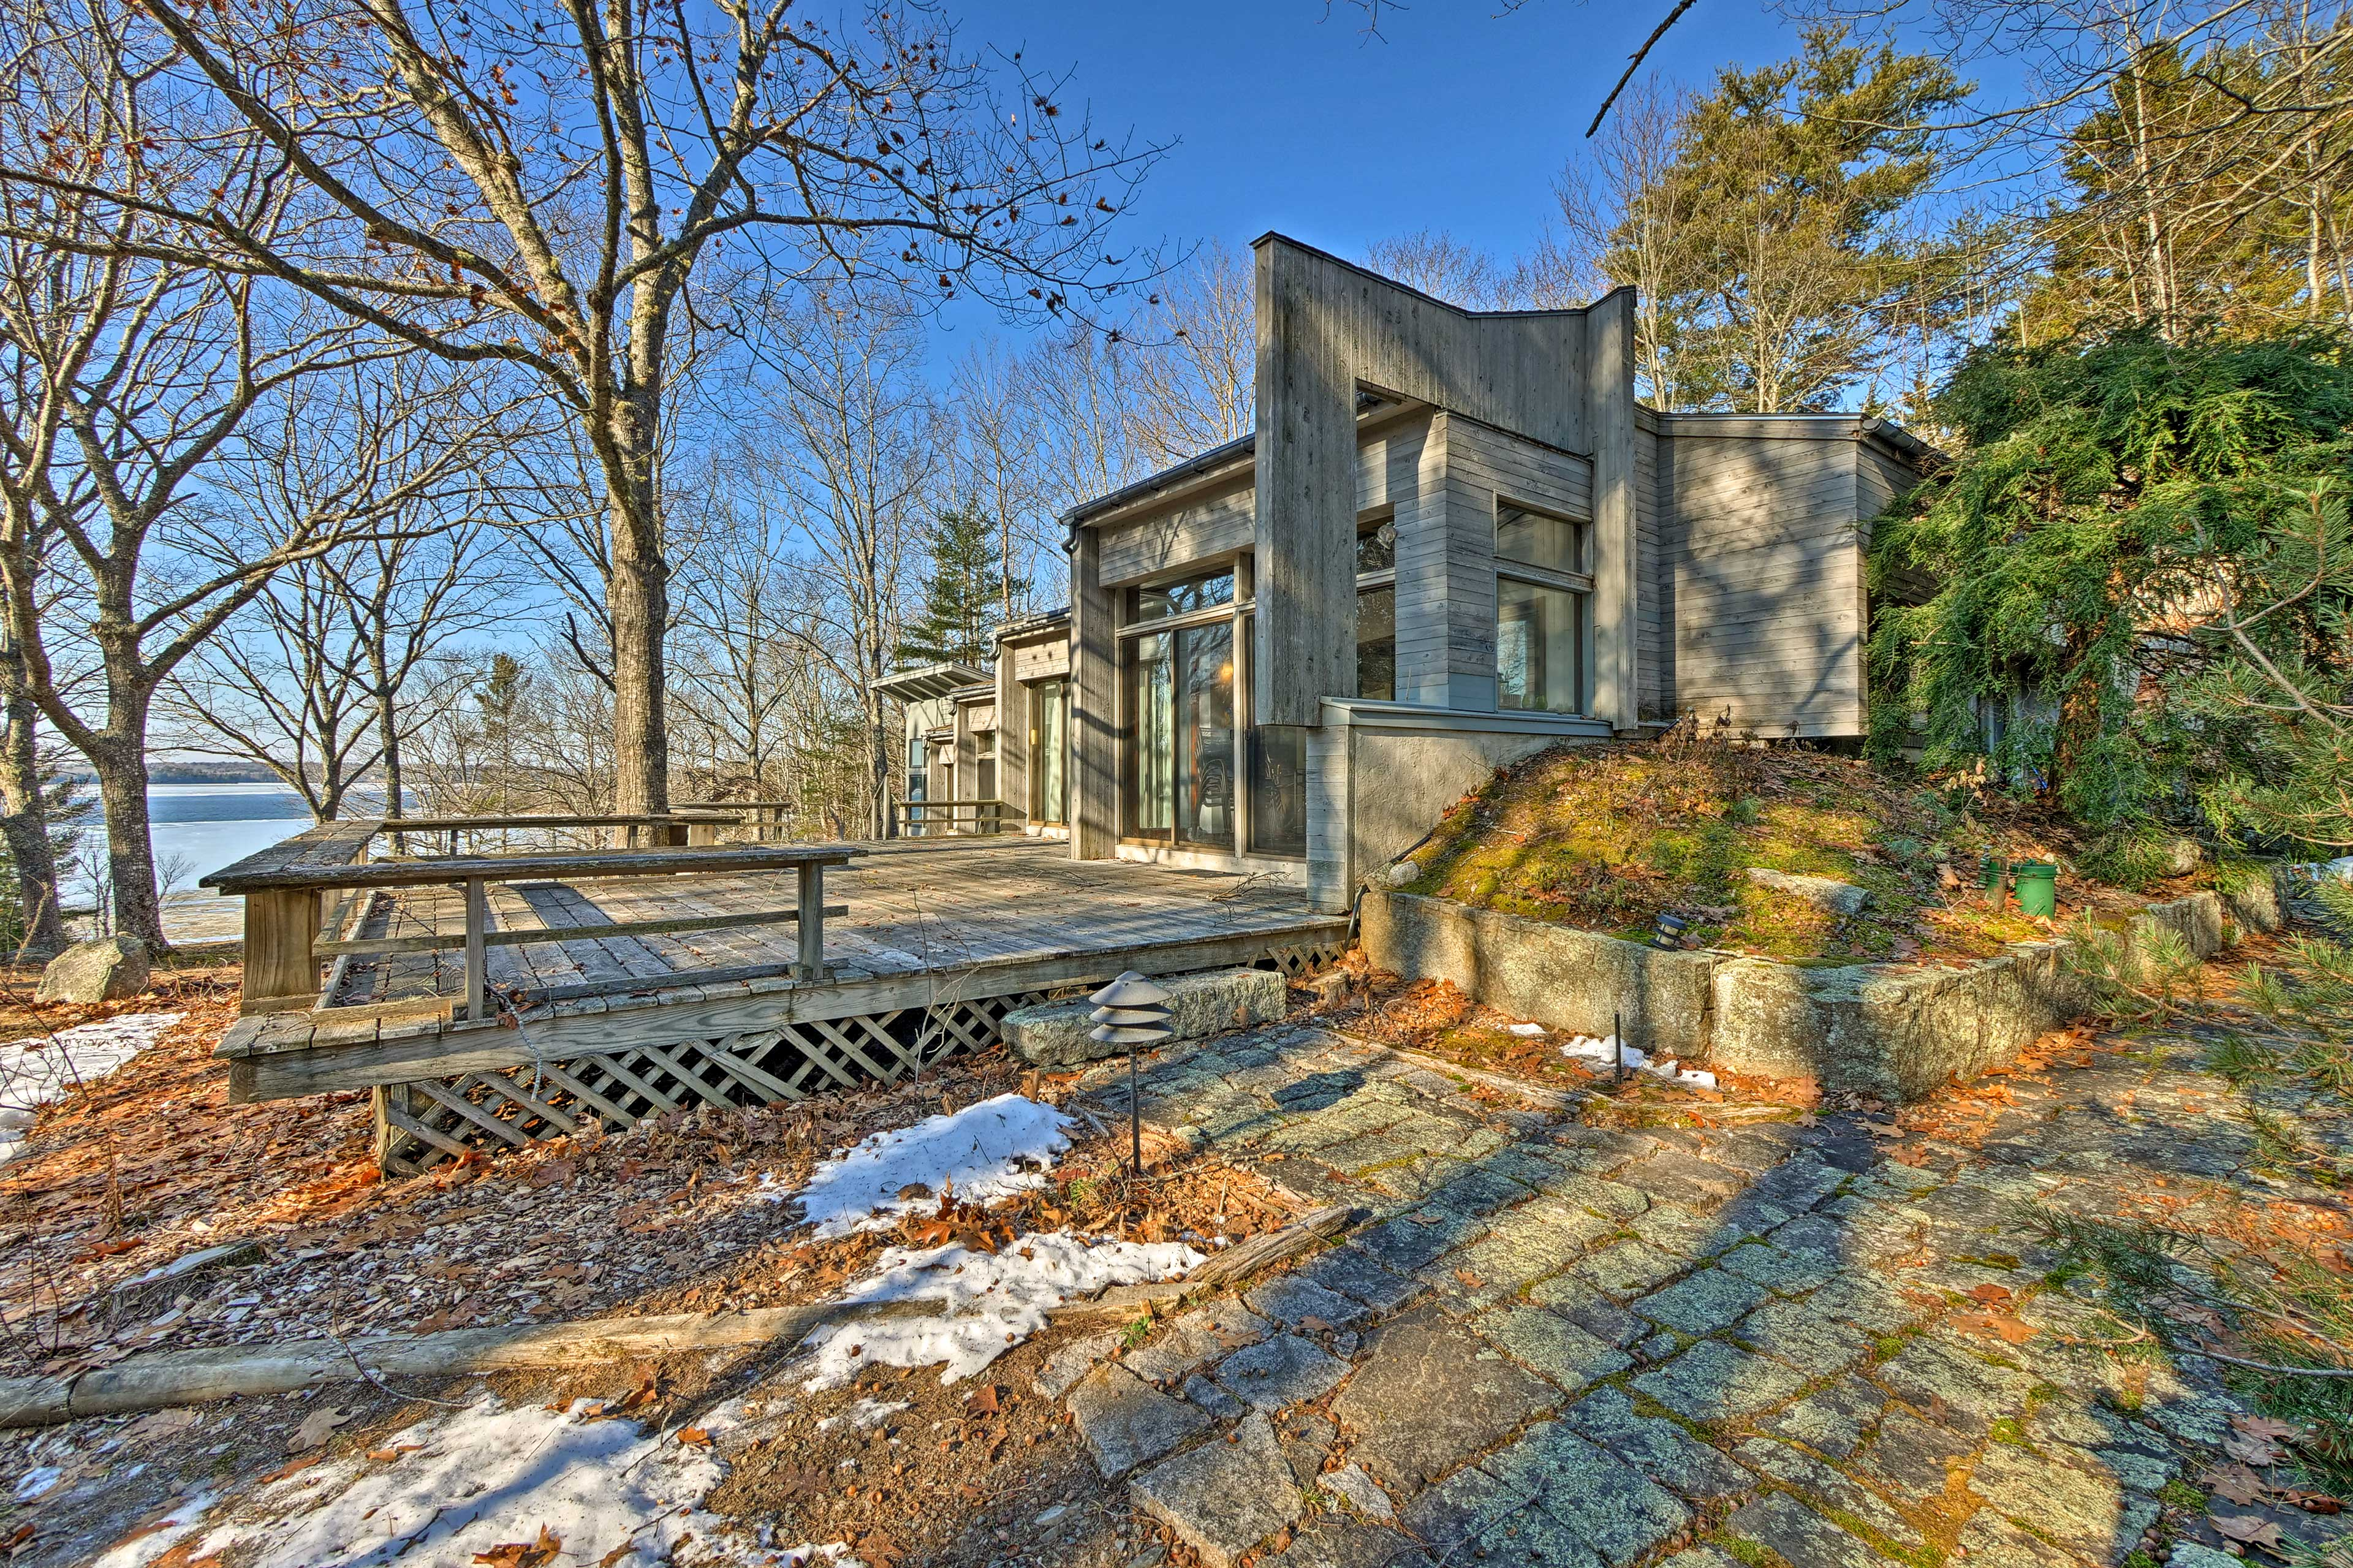 Fall in love with the natural paradise of Maine at this vacation rental for 8.